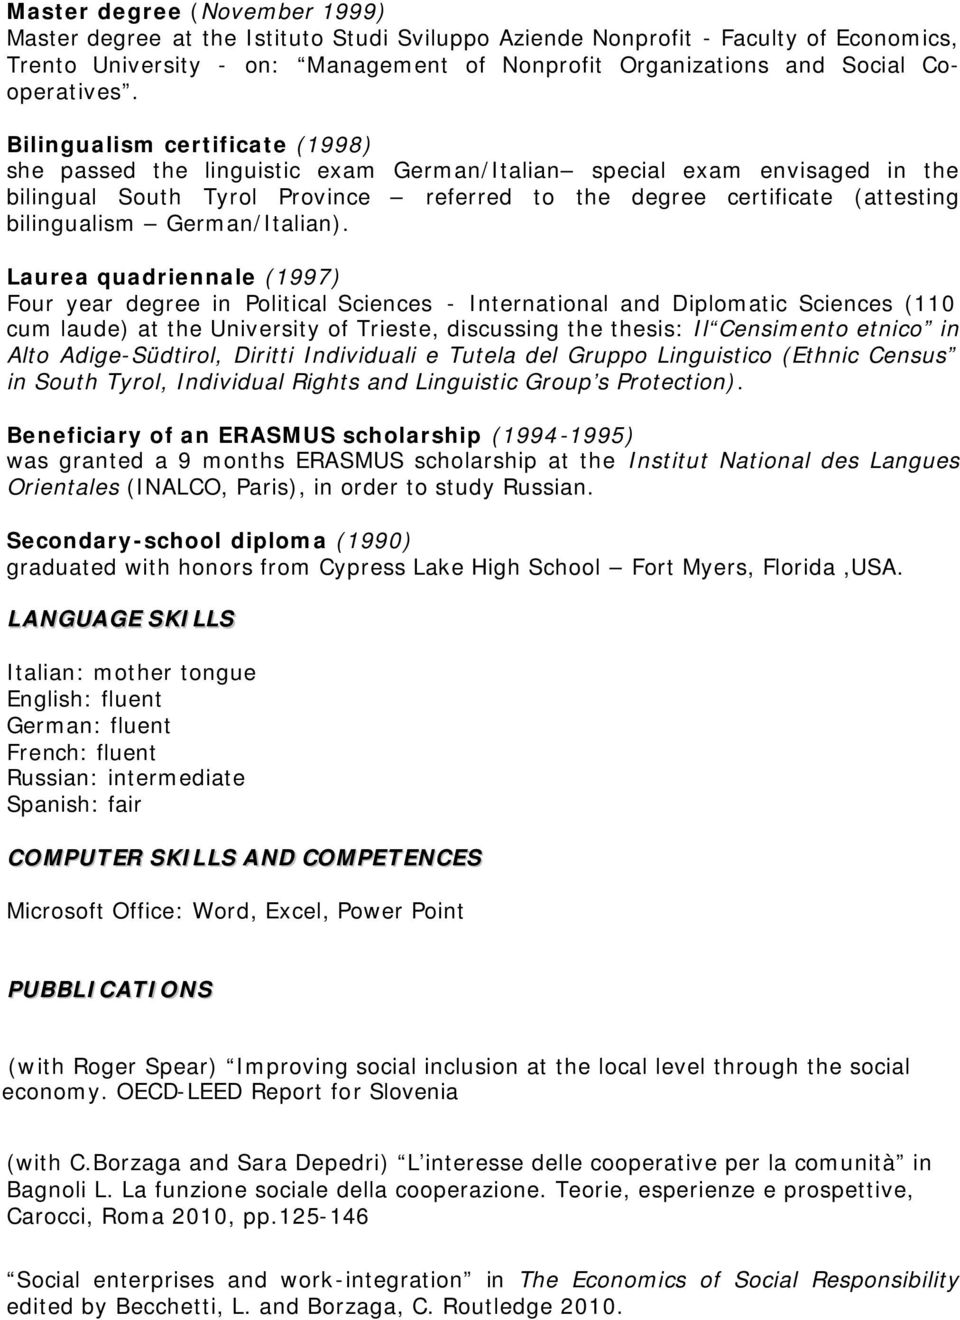 Bilingualism certificate (1998) she passed the linguistic exam German/Italian special exam envisaged in the bilingual South Tyrol Province referred to the degree certificate (attesting bilingualism